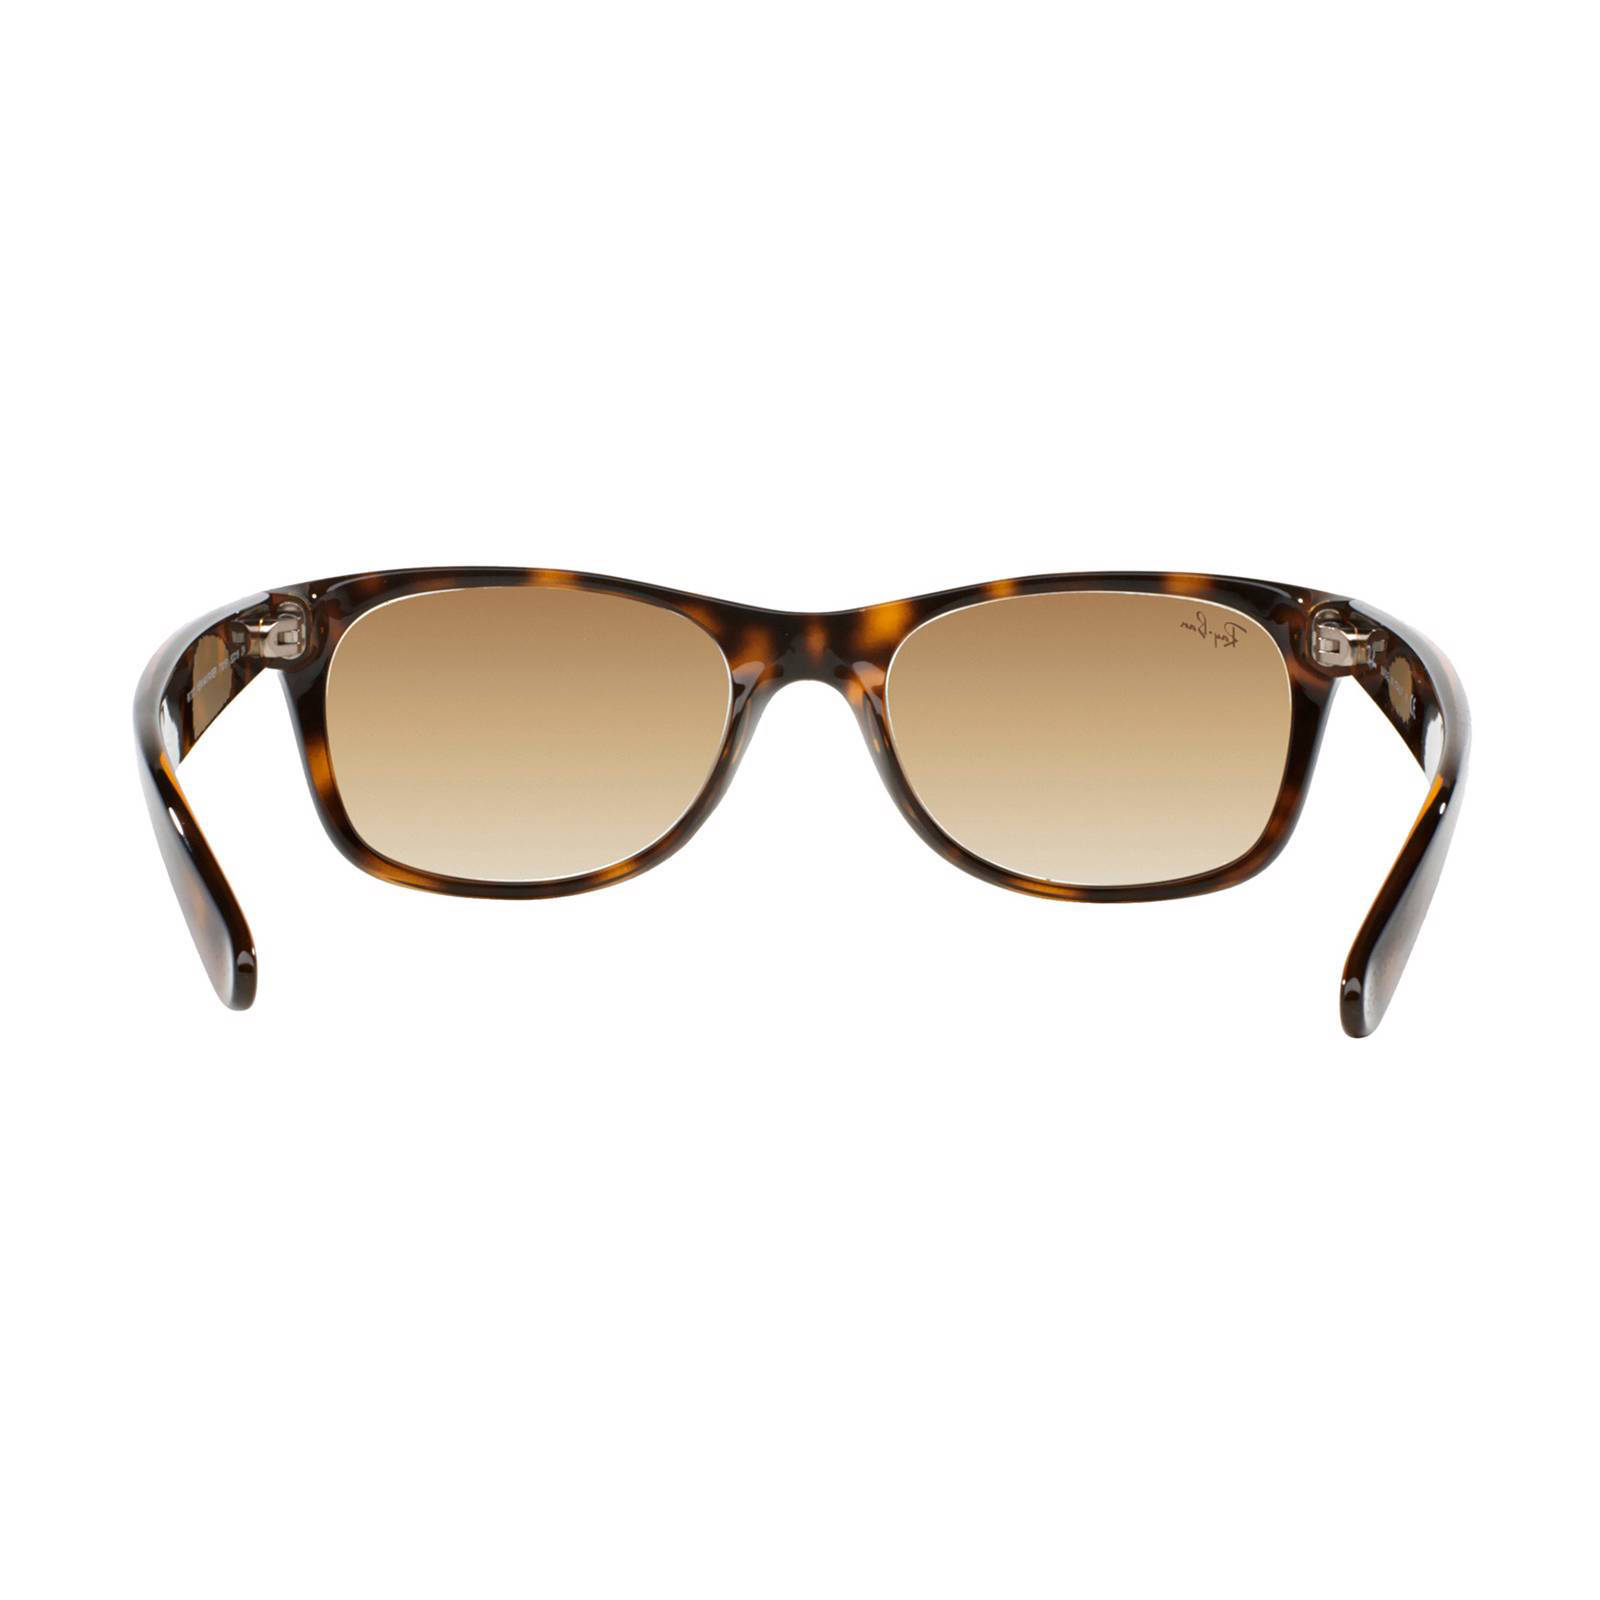 Ray Ban zonnebril 0RB2132 | wehkamp